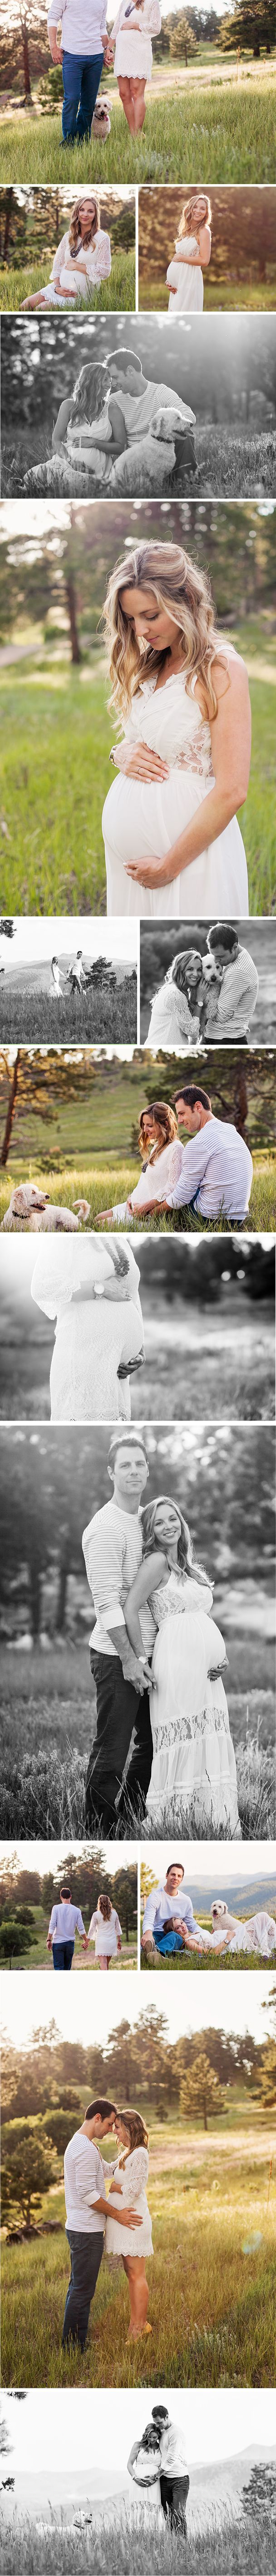 We are absolutely loving this natural light maternity session by Sara Garcia Photo Art! Everything about this session is so dreamy!    From Sara: